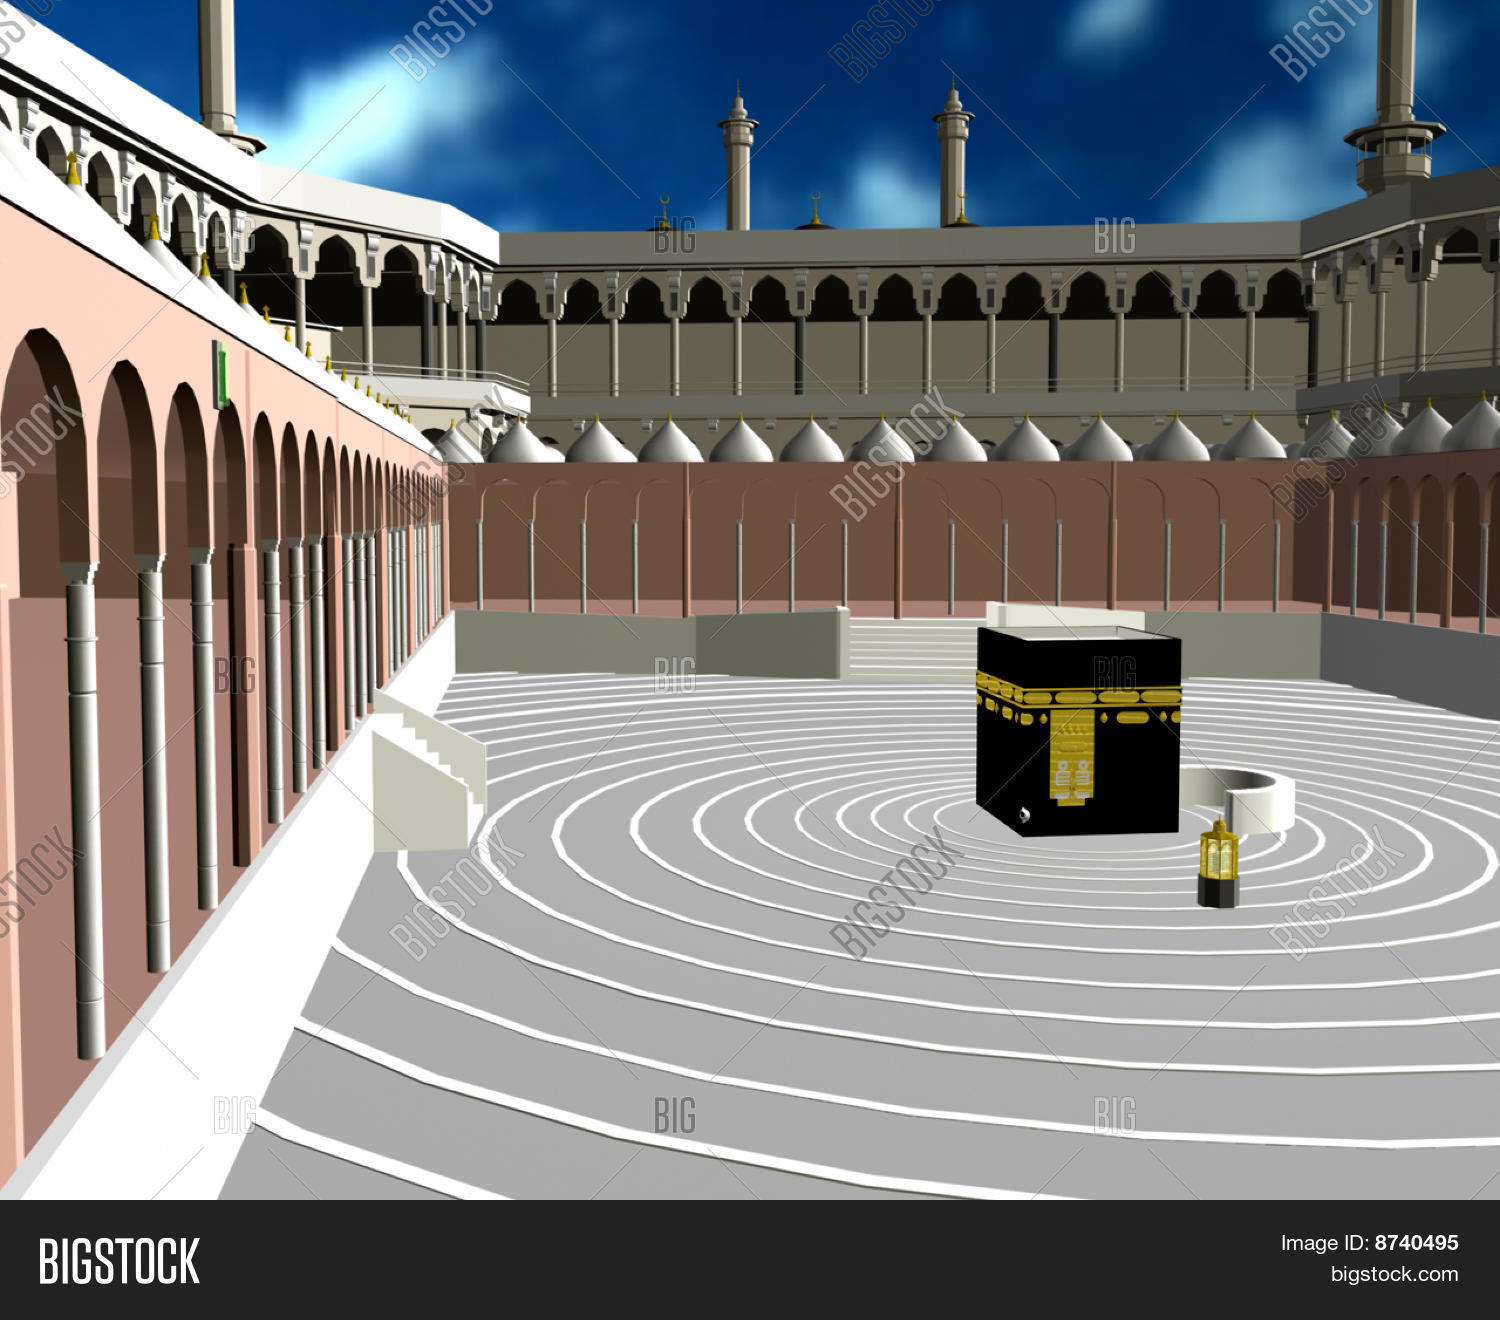 Makkah 3d Image & Photo (Free Trial) | Bigstock